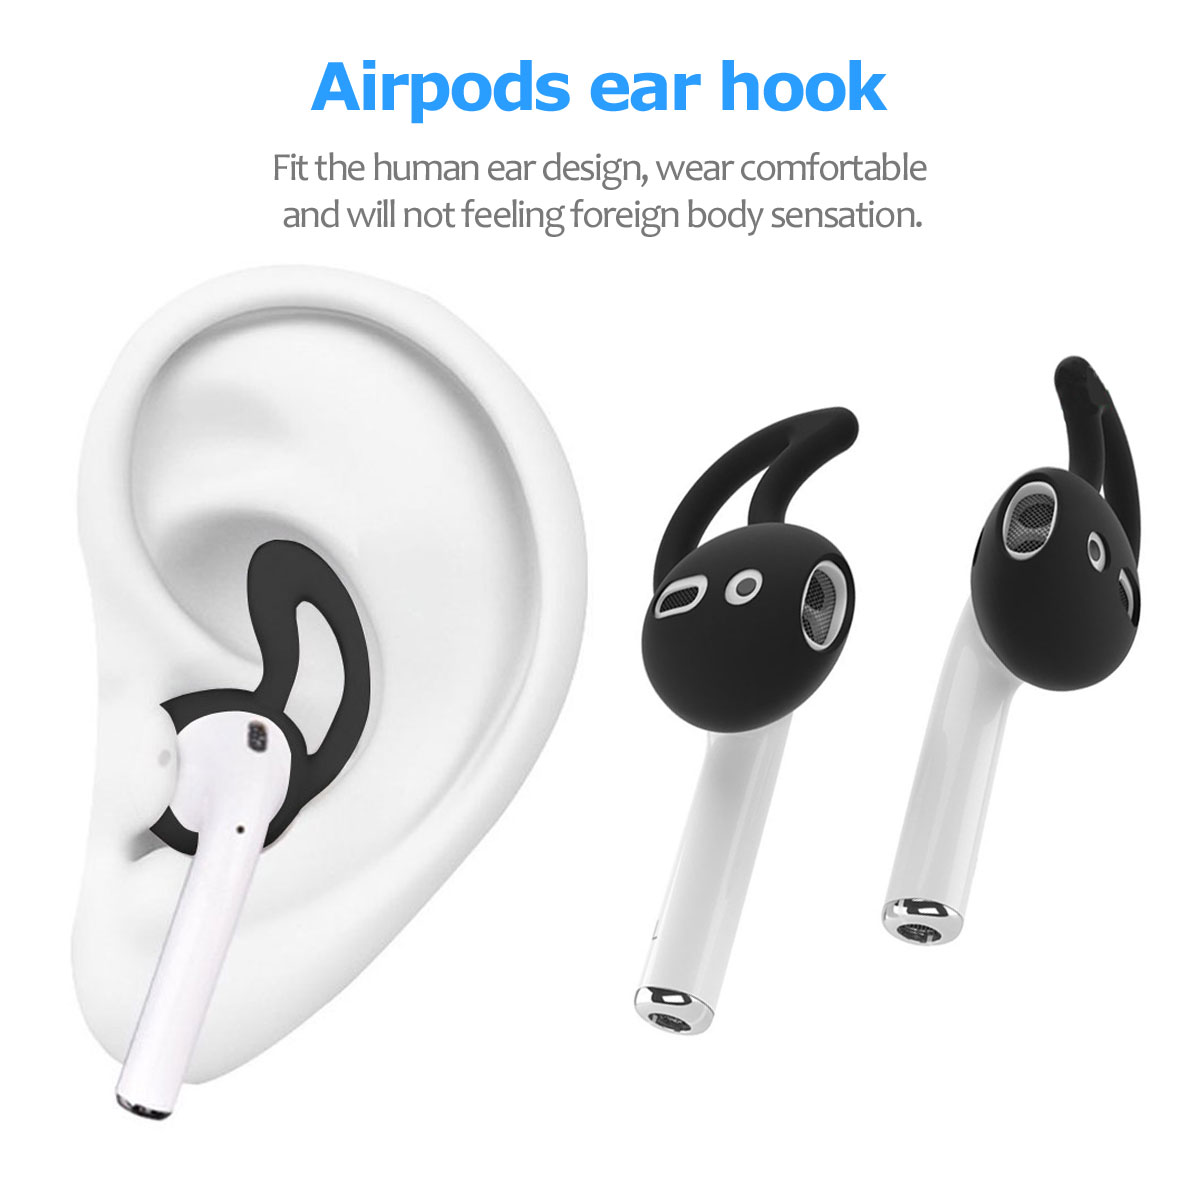 Silicone-Ruggged-Case-Cover-Earbuds-For-Apple-AirPods-2nd-Gen-Accessories-2019 thumbnail 18